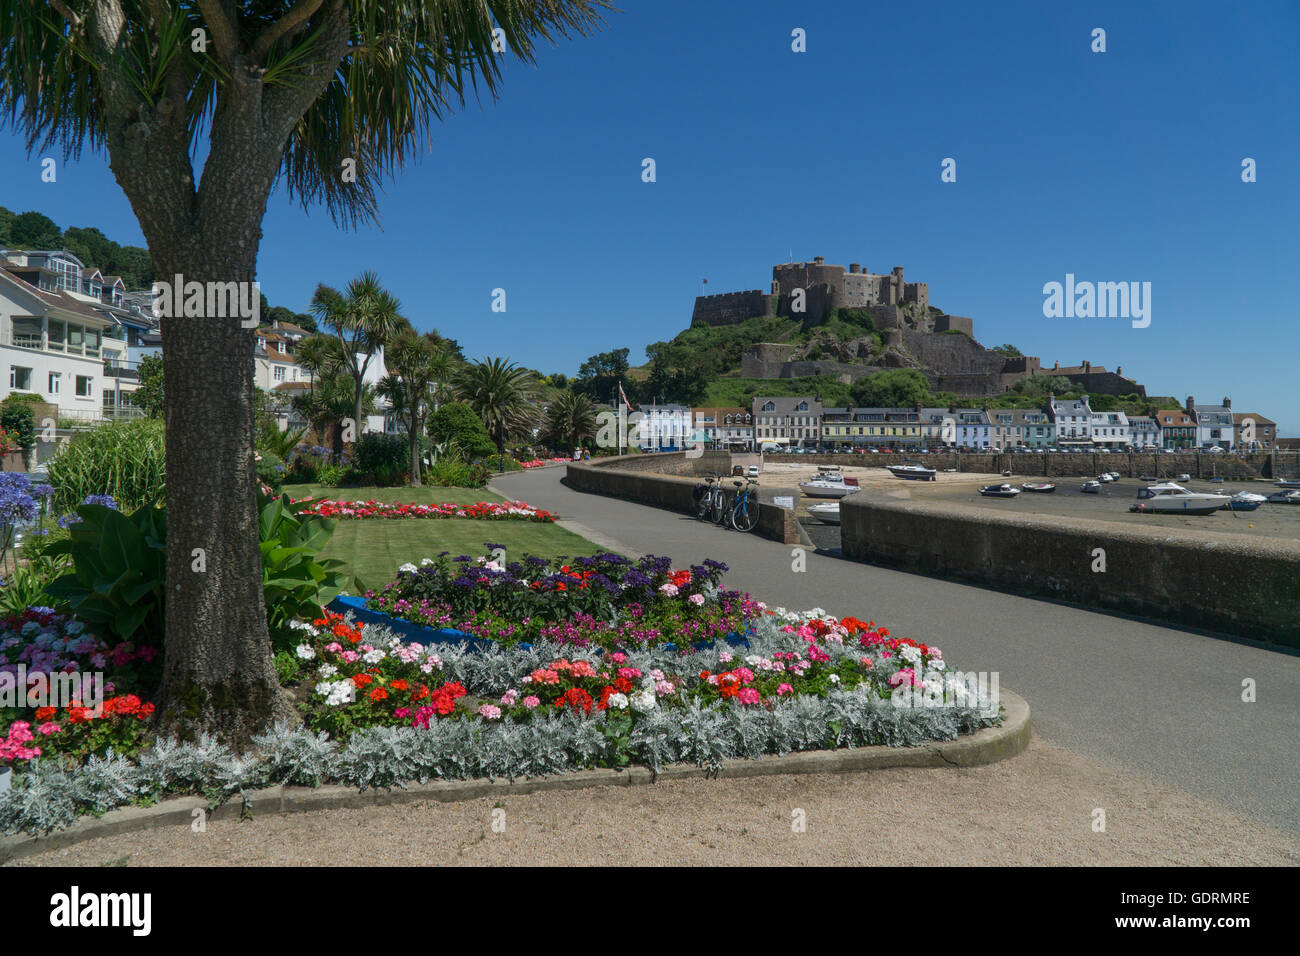 Seafront flower gardens flowers stock photos seafront for Garden design jersey channel islands